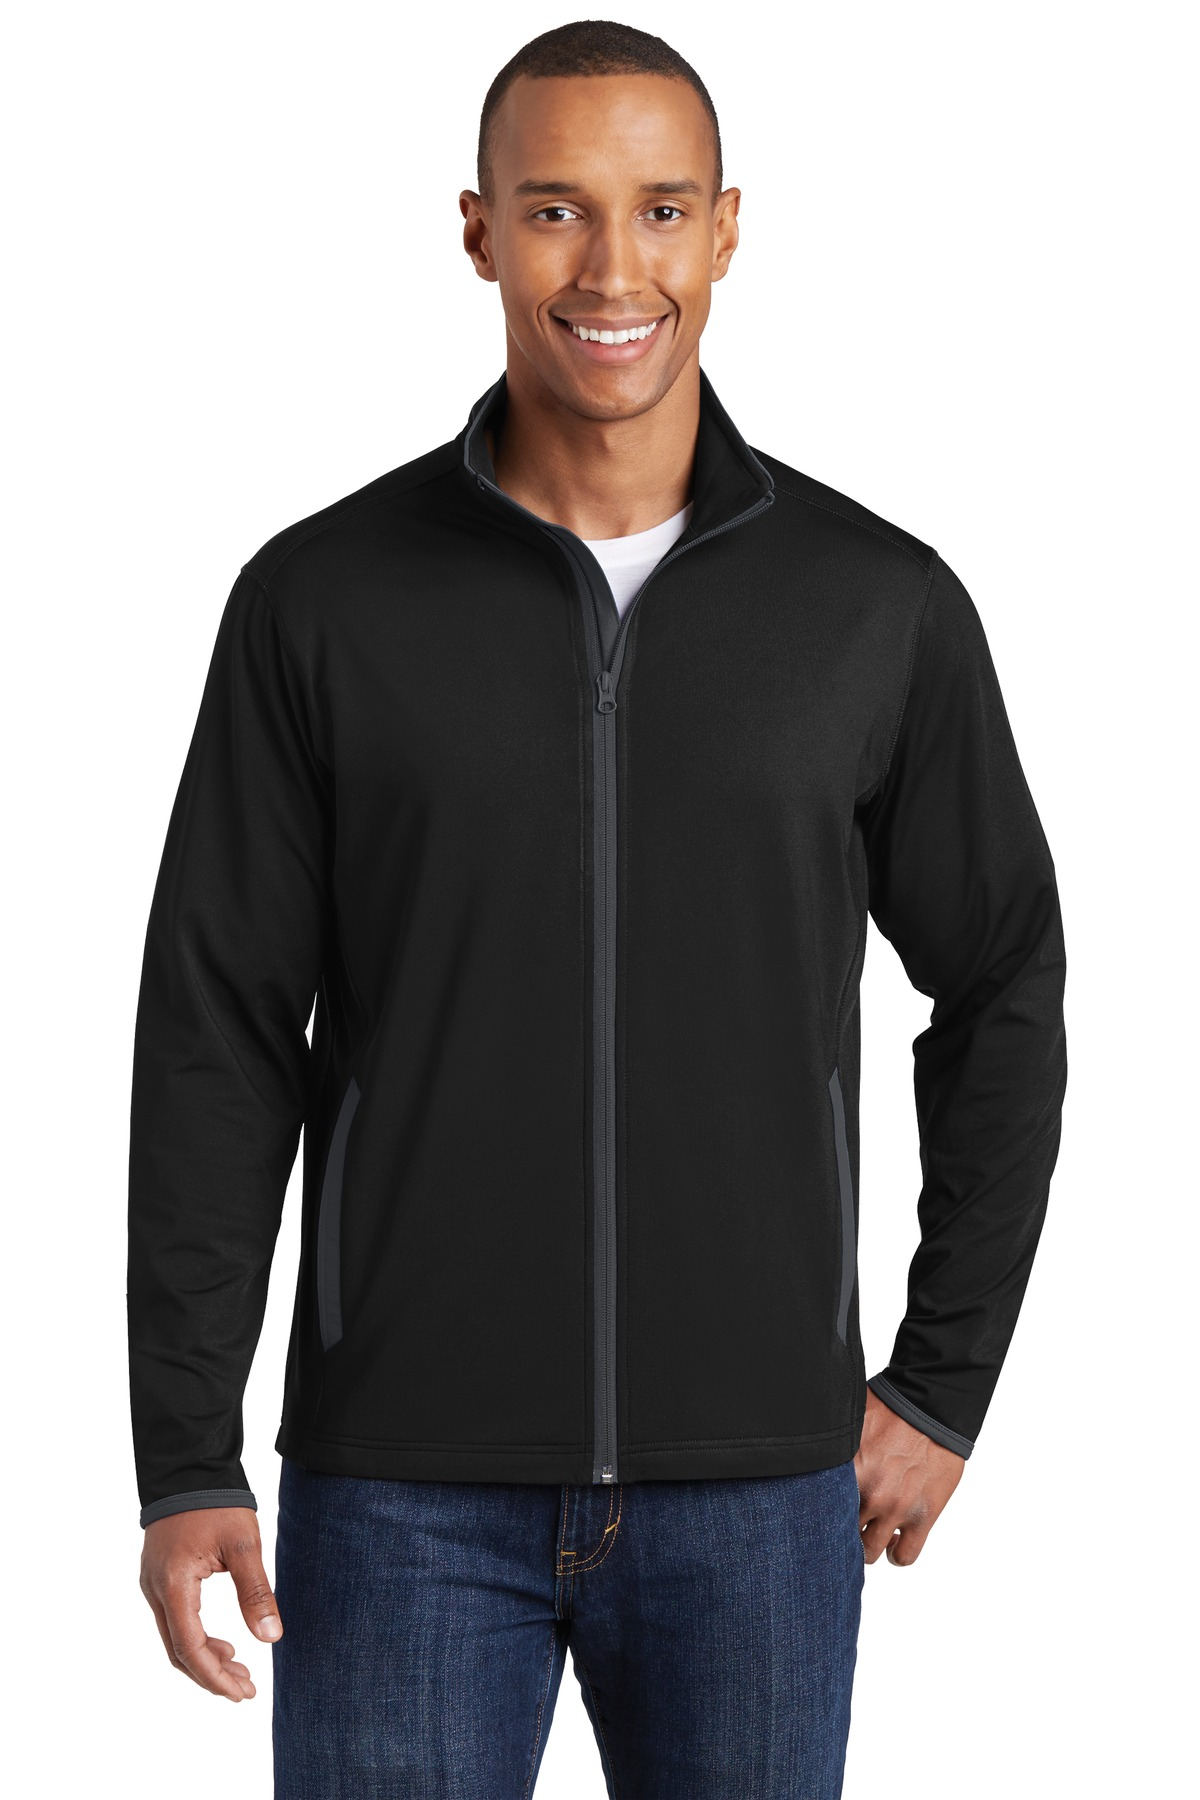 Sport-Tek ®  Sport-Wick ®  Stretch Contrast Full-Zip Jacket.  ST853 - Black/ Charcoal Grey